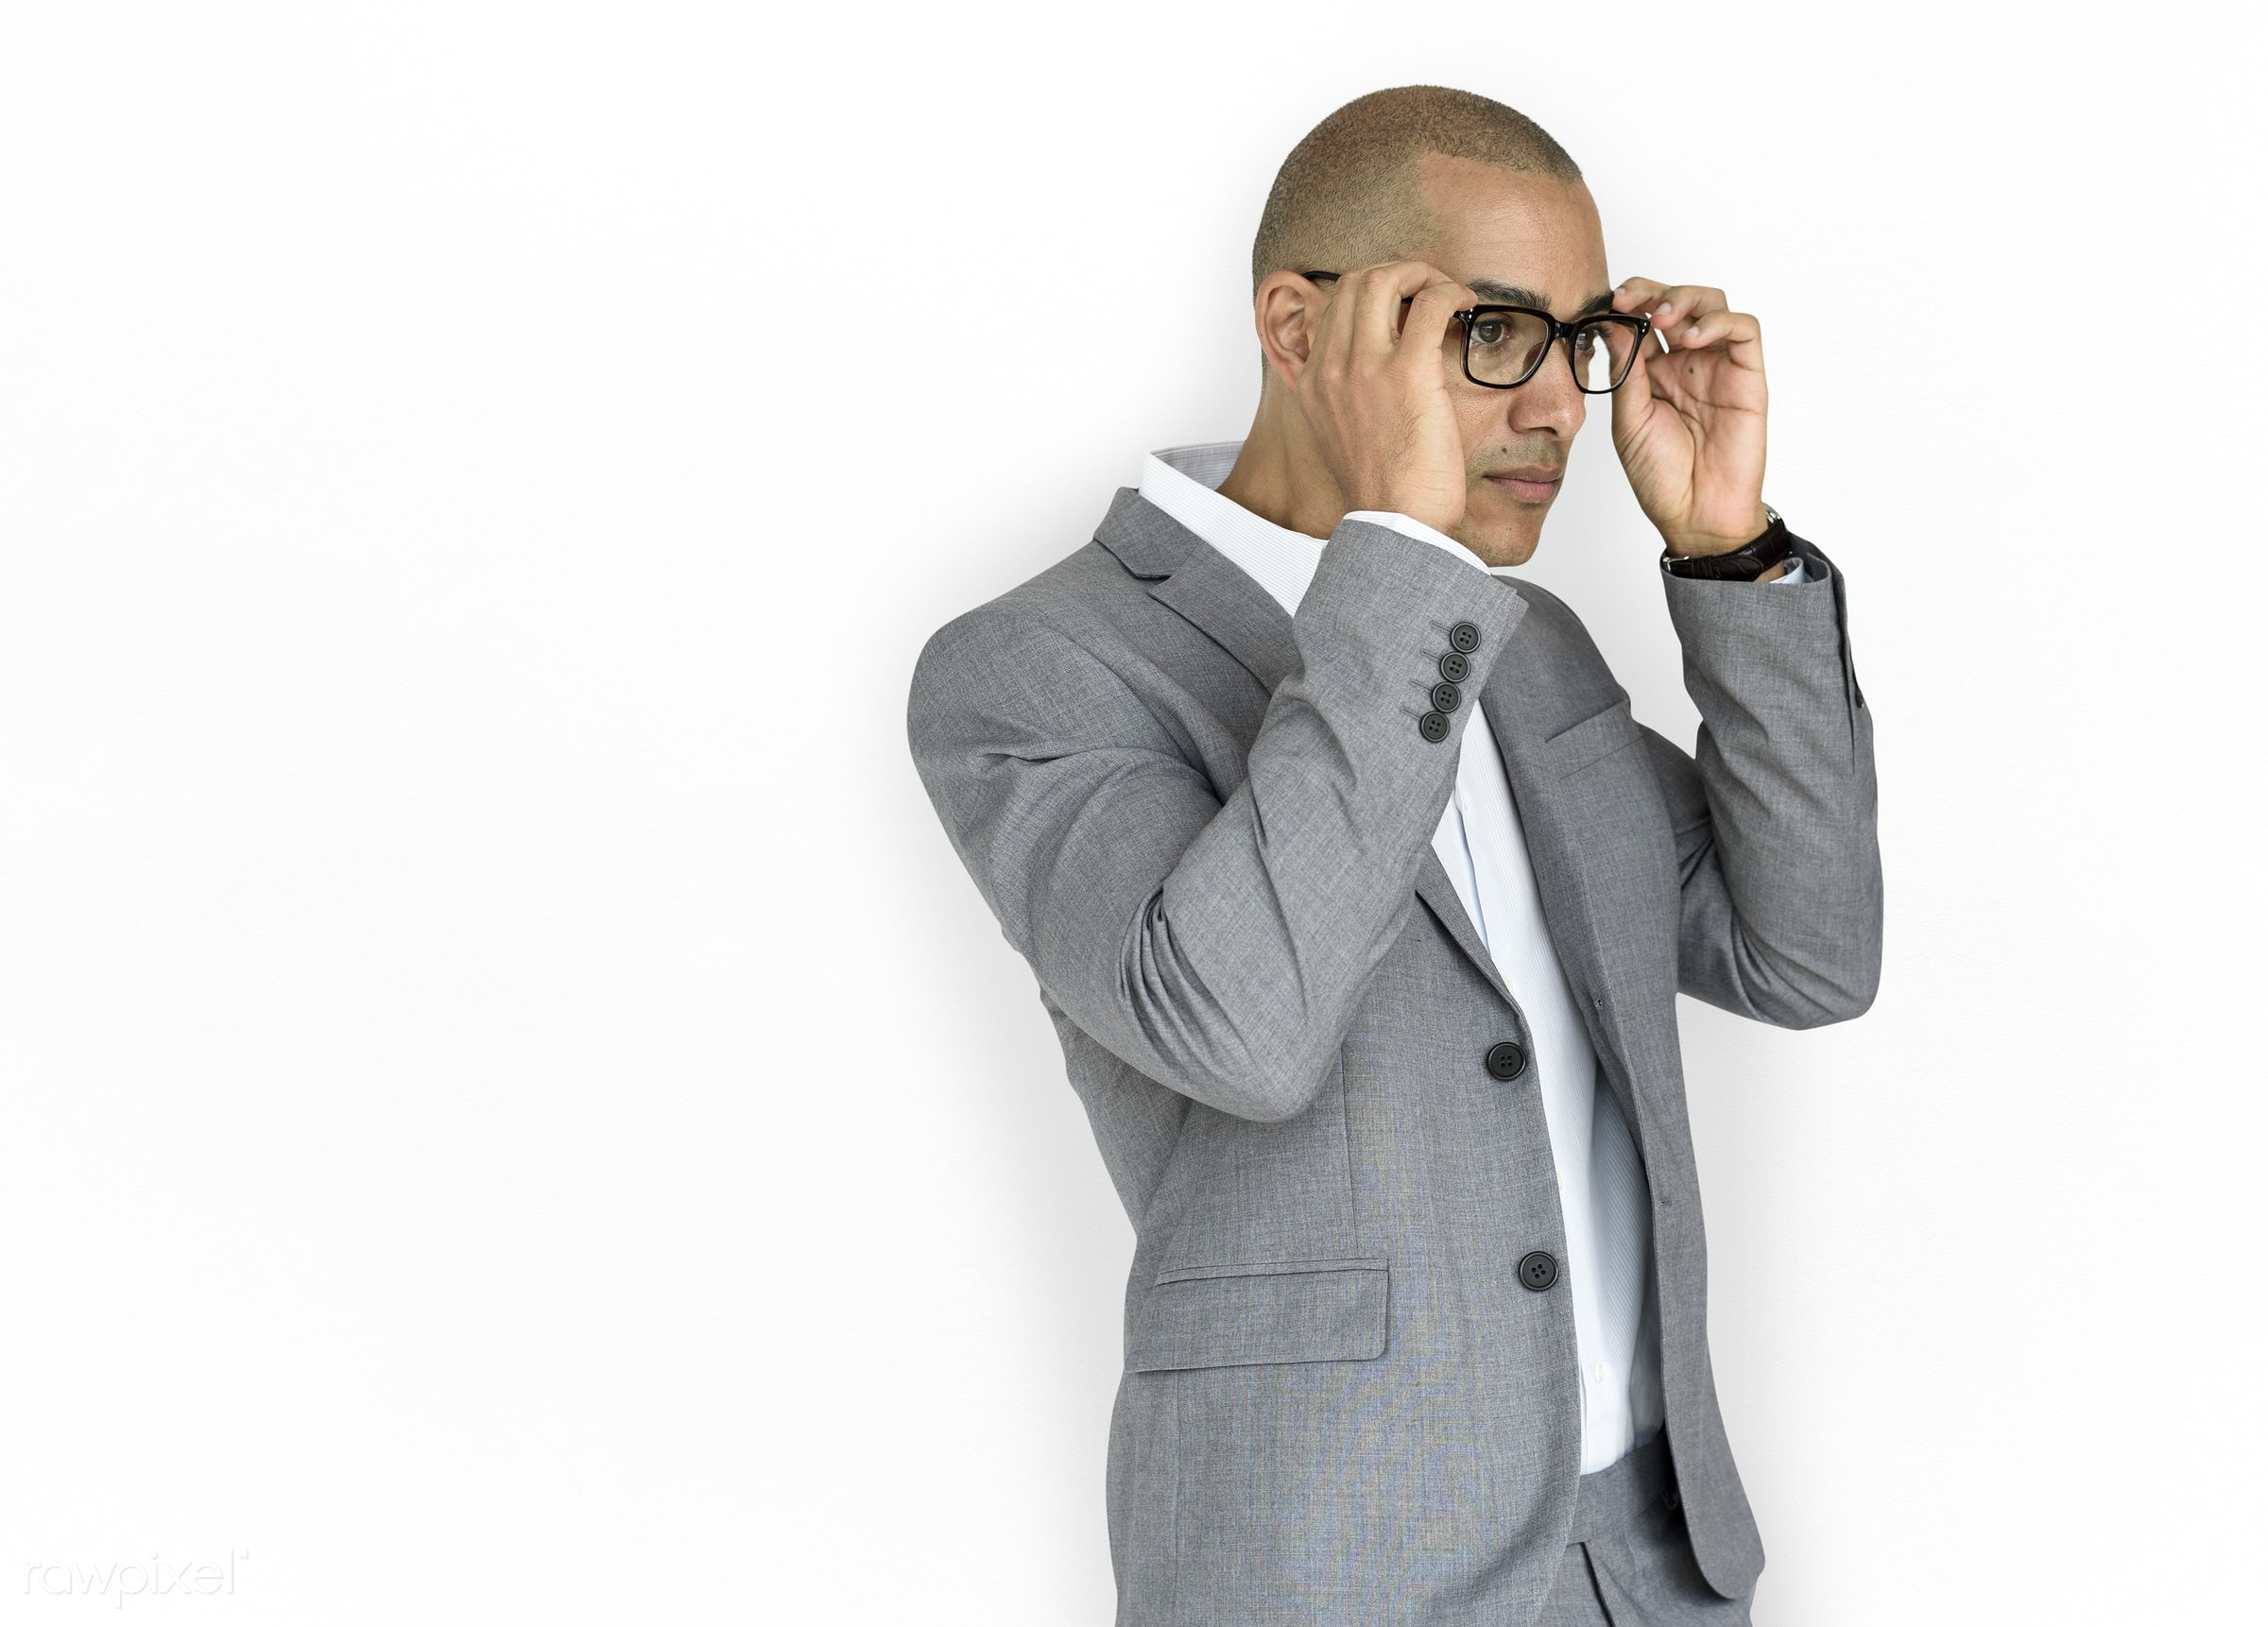 expression, studio, face, person, glasses, isolated on white, courage, carefree, people, business, businessman, fresh,...